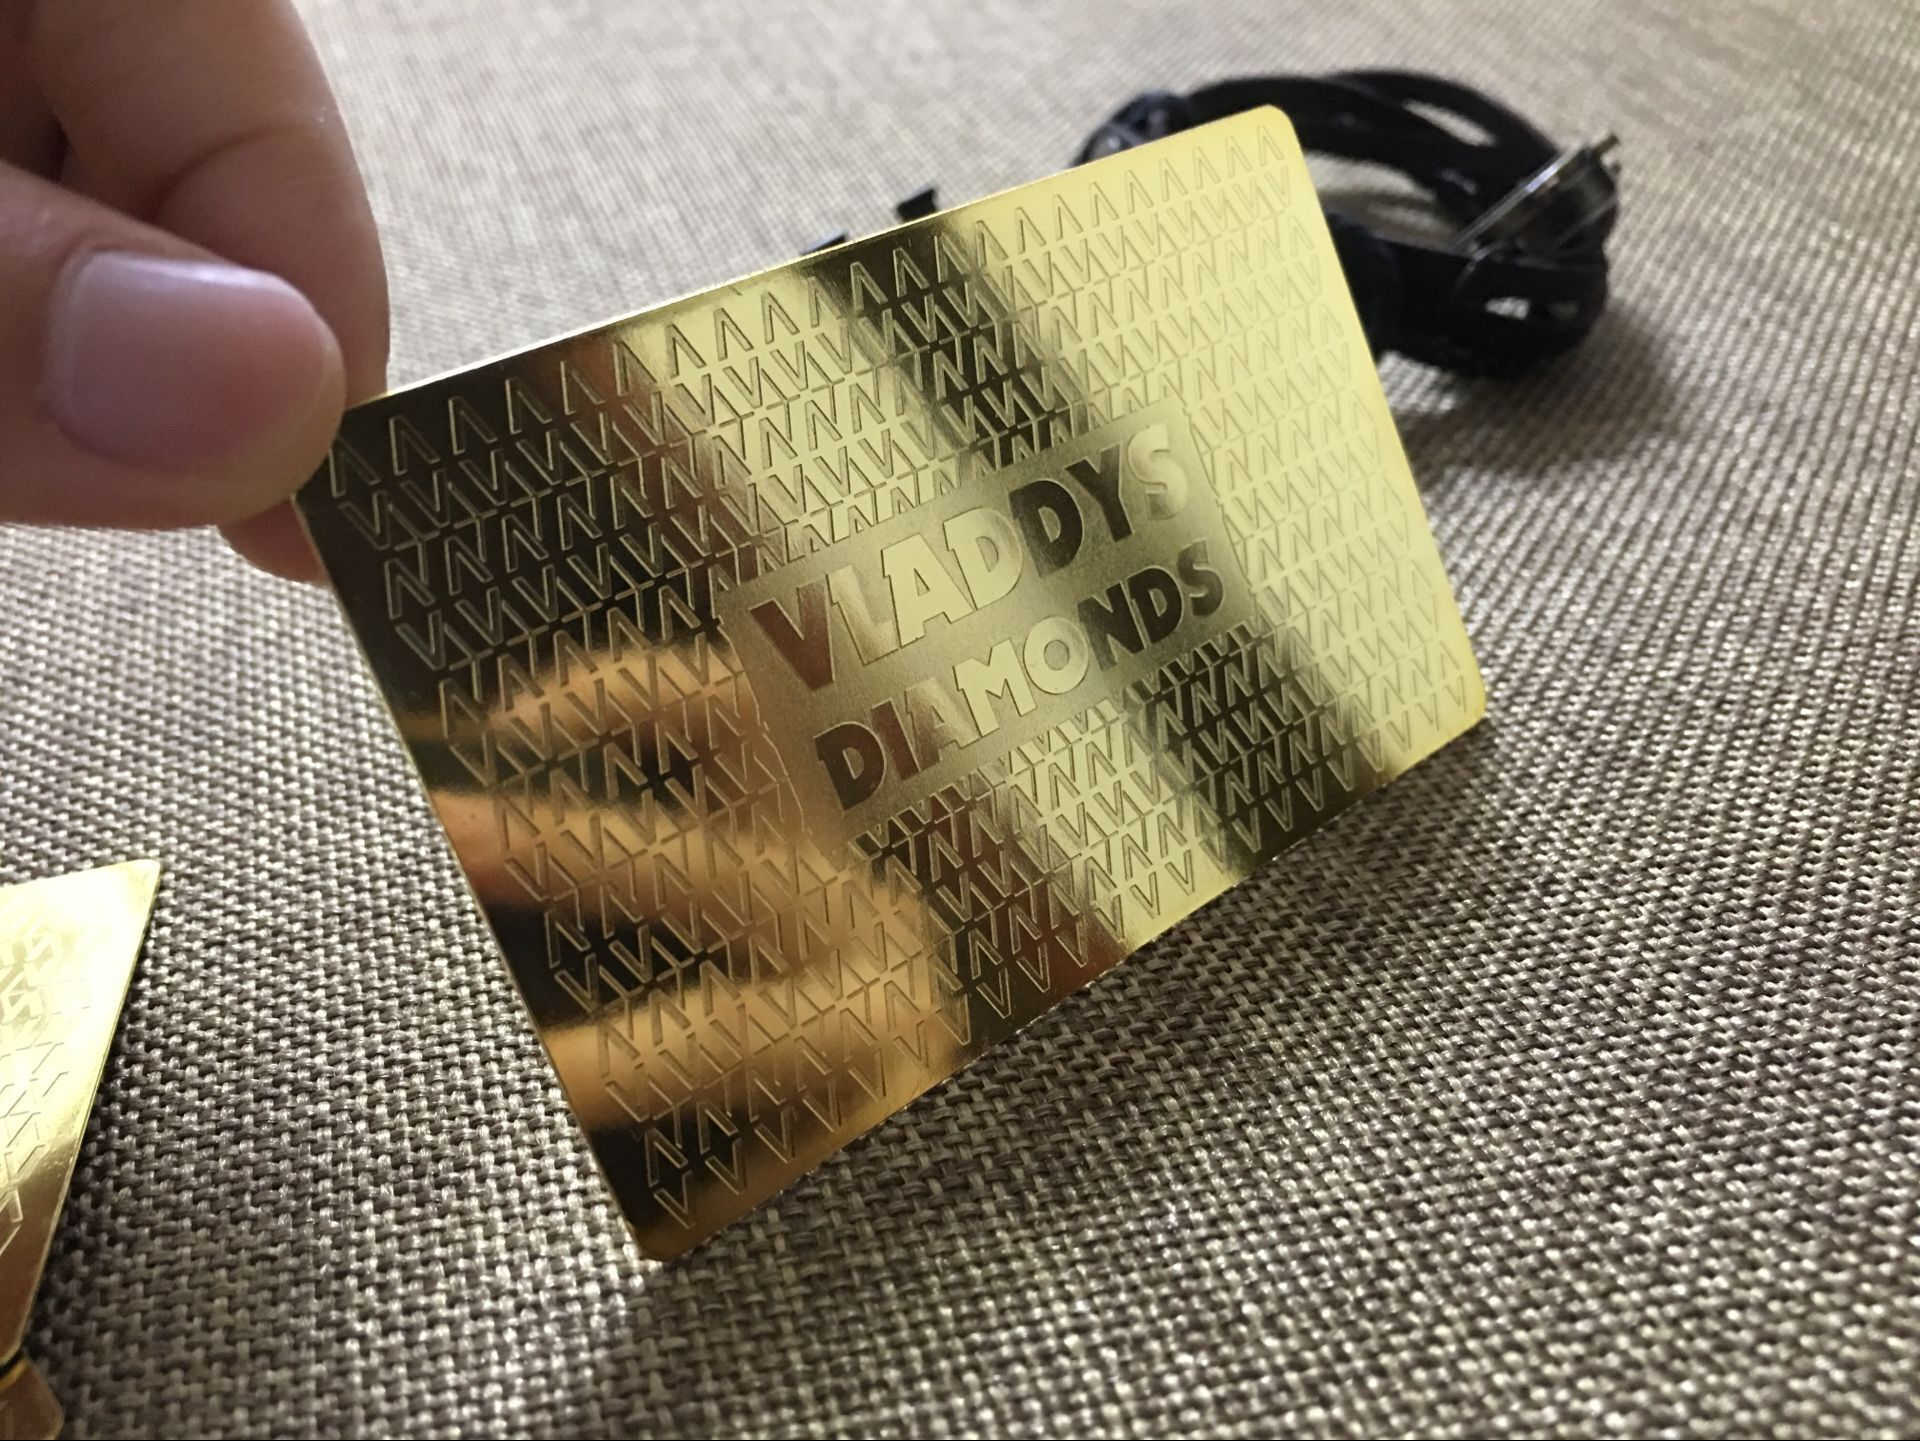 Gold Metal Business Cards Luxury Business Cards Free Shipping Metal Business Cards Luxury Business Cards Gold Metal